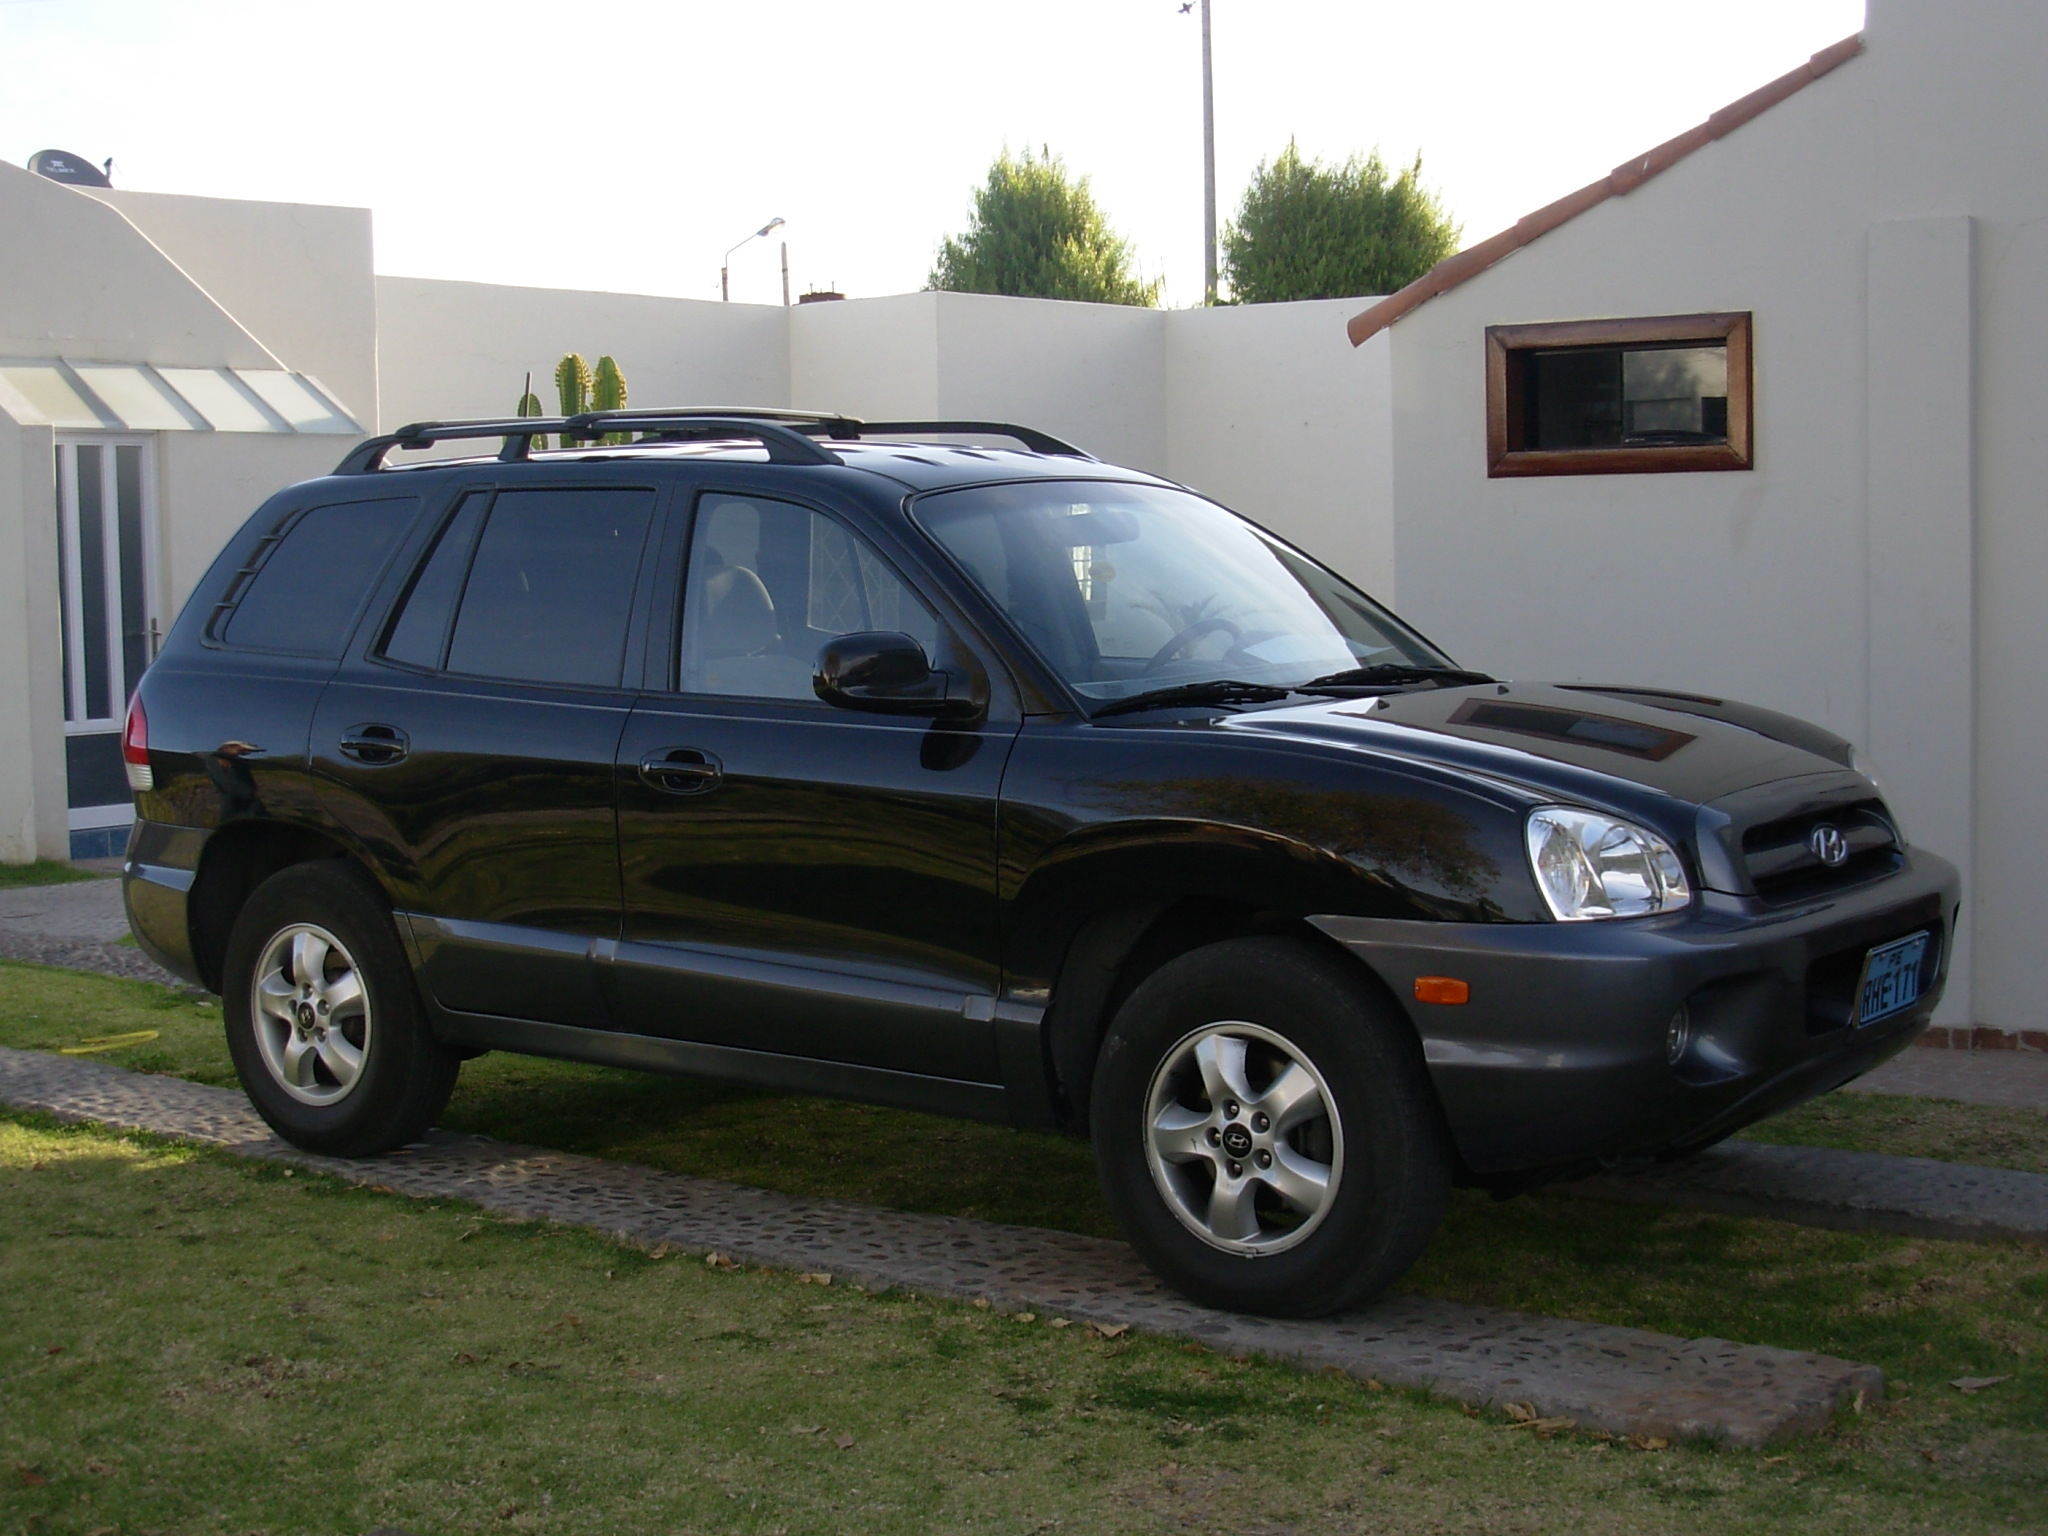 Amazing Download Hyundai Santa Fe 2005 1